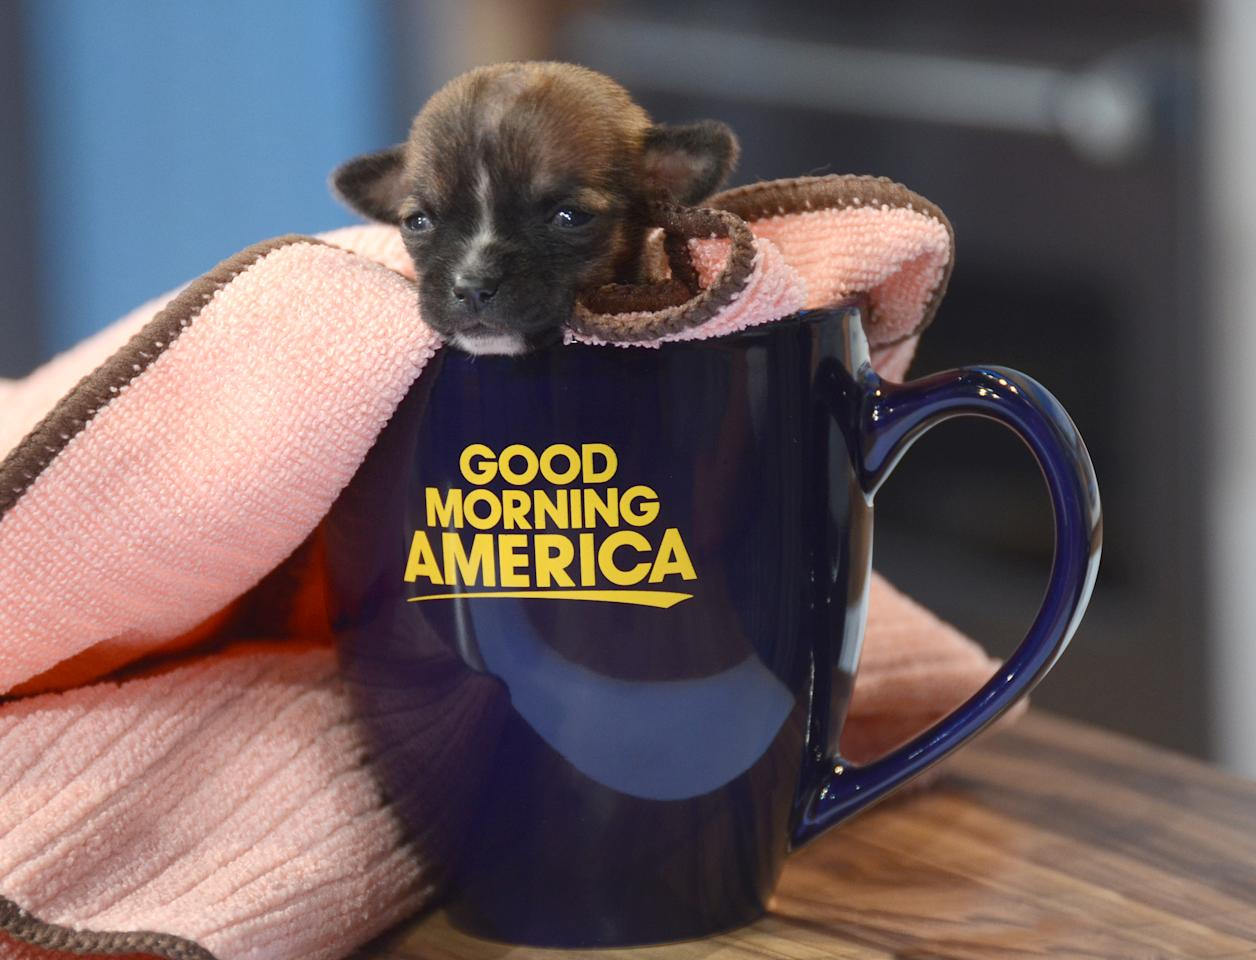 """Beyonce, the tiny rescue dog who survived against the odds, can fit into a """"Good Morning America"""" coffee cup. In about six weeks, Beyonce will be up for adoption through the <a target=""""_blank"""" href=""""http://www.thegracefoundation.com/"""">Grace Foundation in Northern California</a>."""